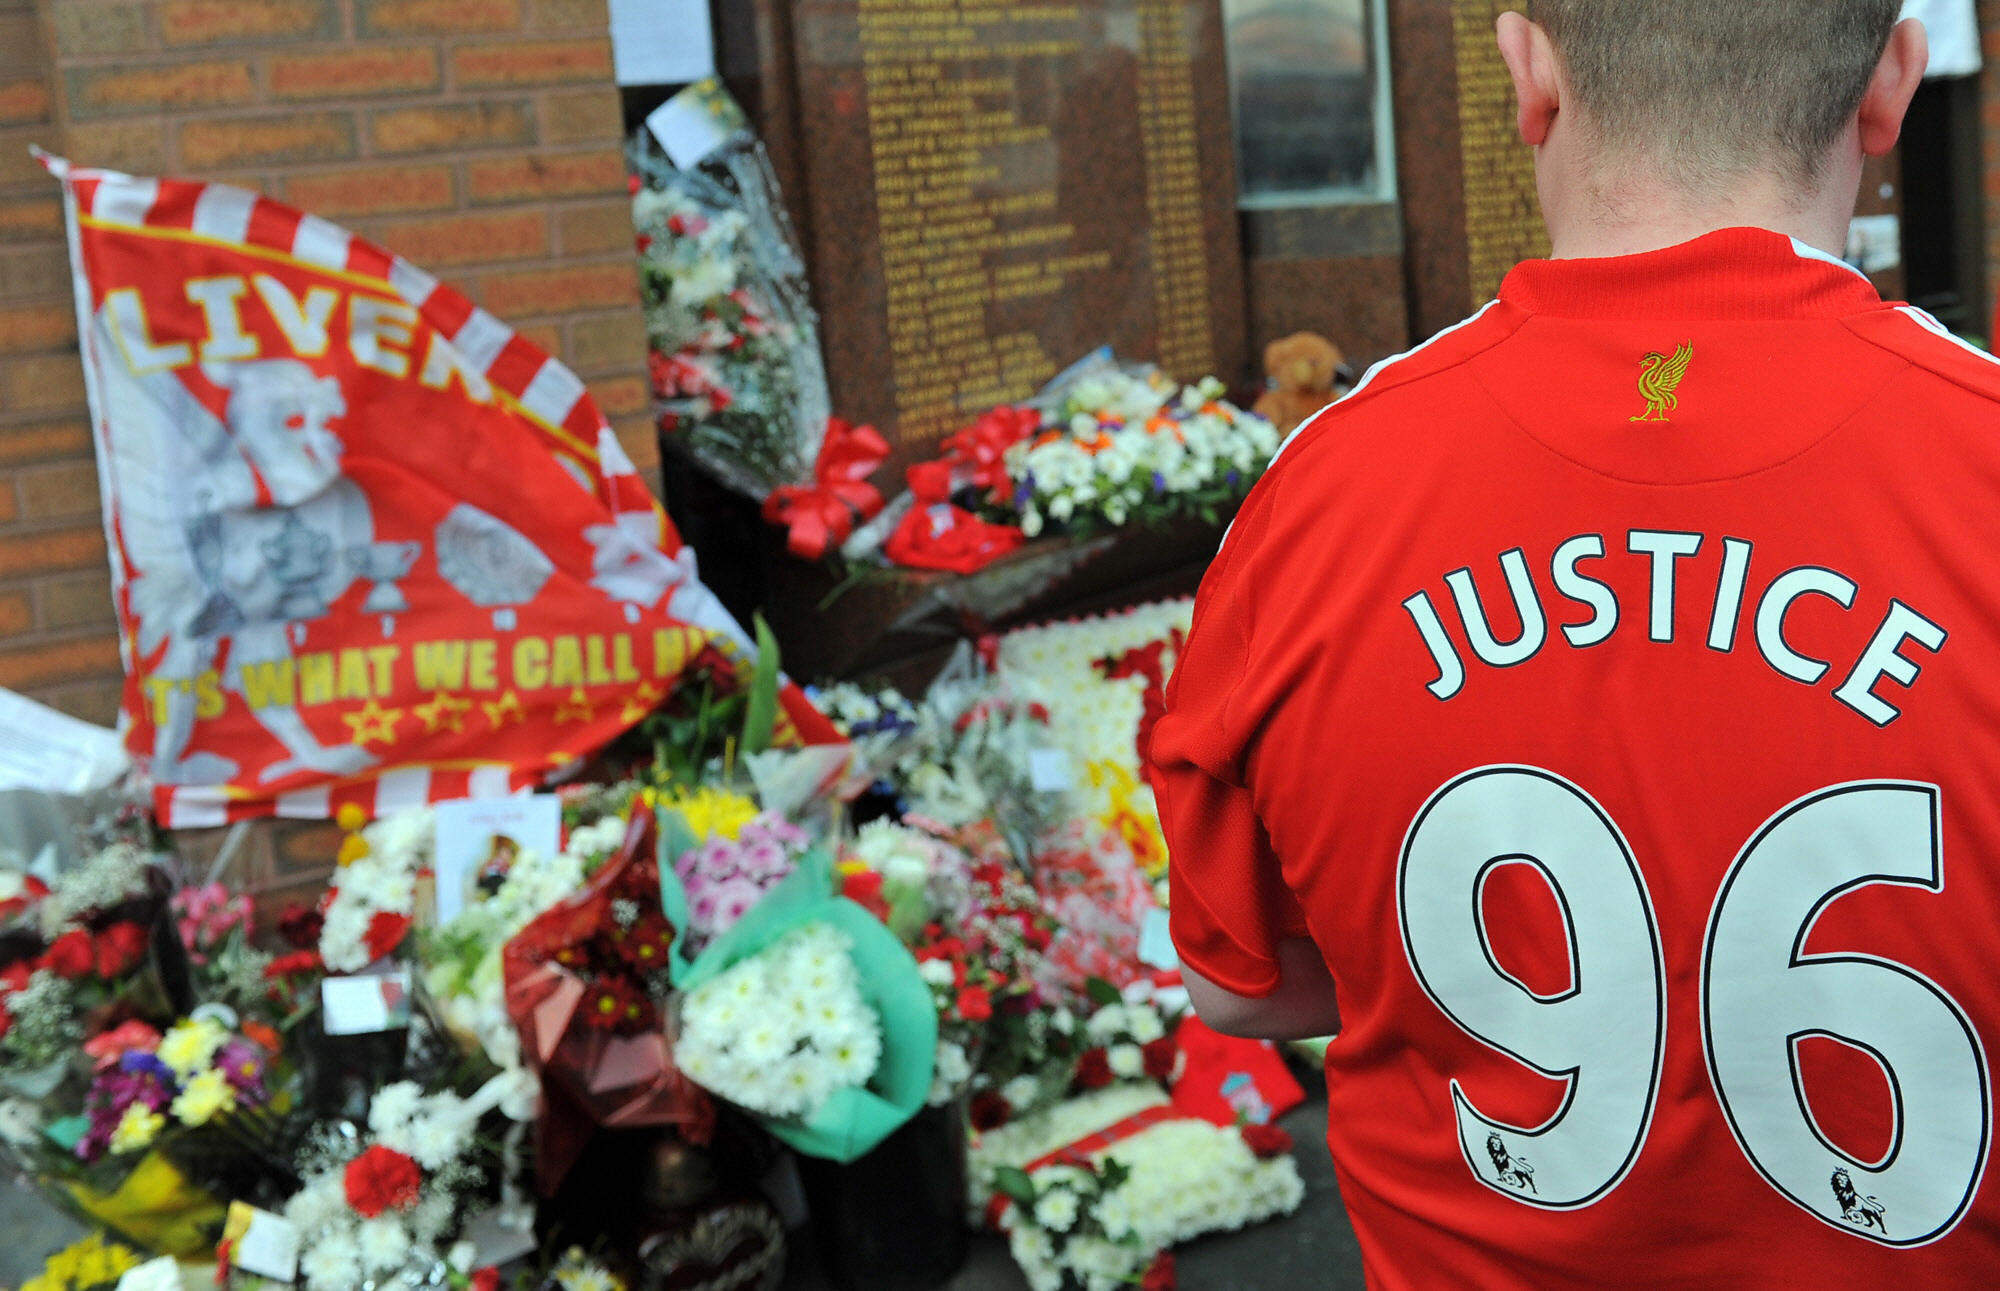 The Hillsborough verdict isn't about football – the disaster was a national disgrace